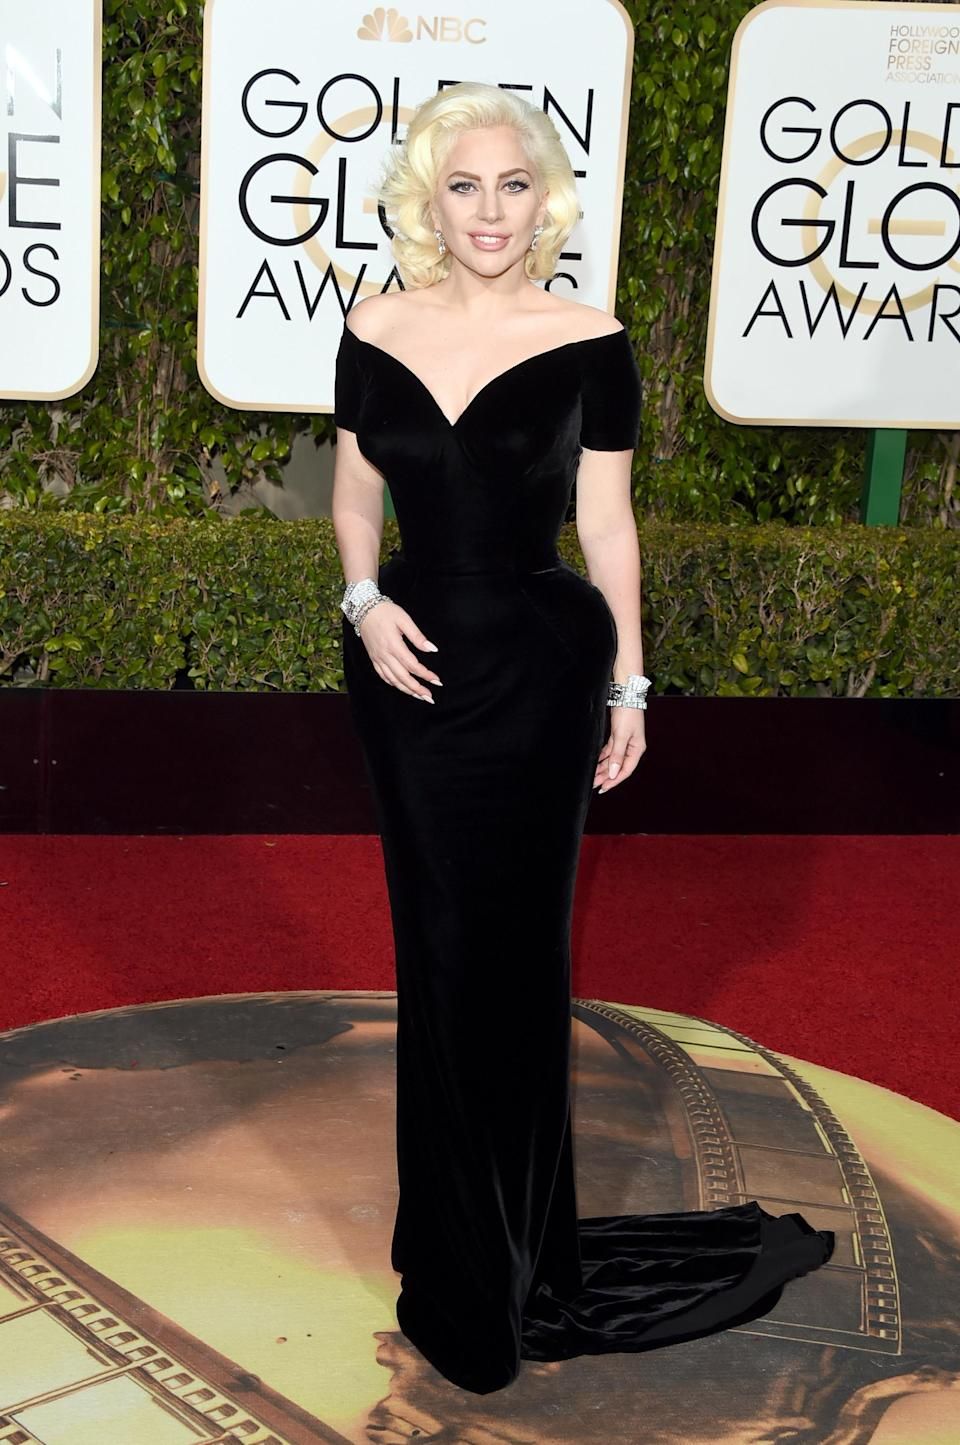 At the 2016 Golden Globe Awards, Lady Gaga chose a Versace dress and concealed her tattoos [Photo: Getty]